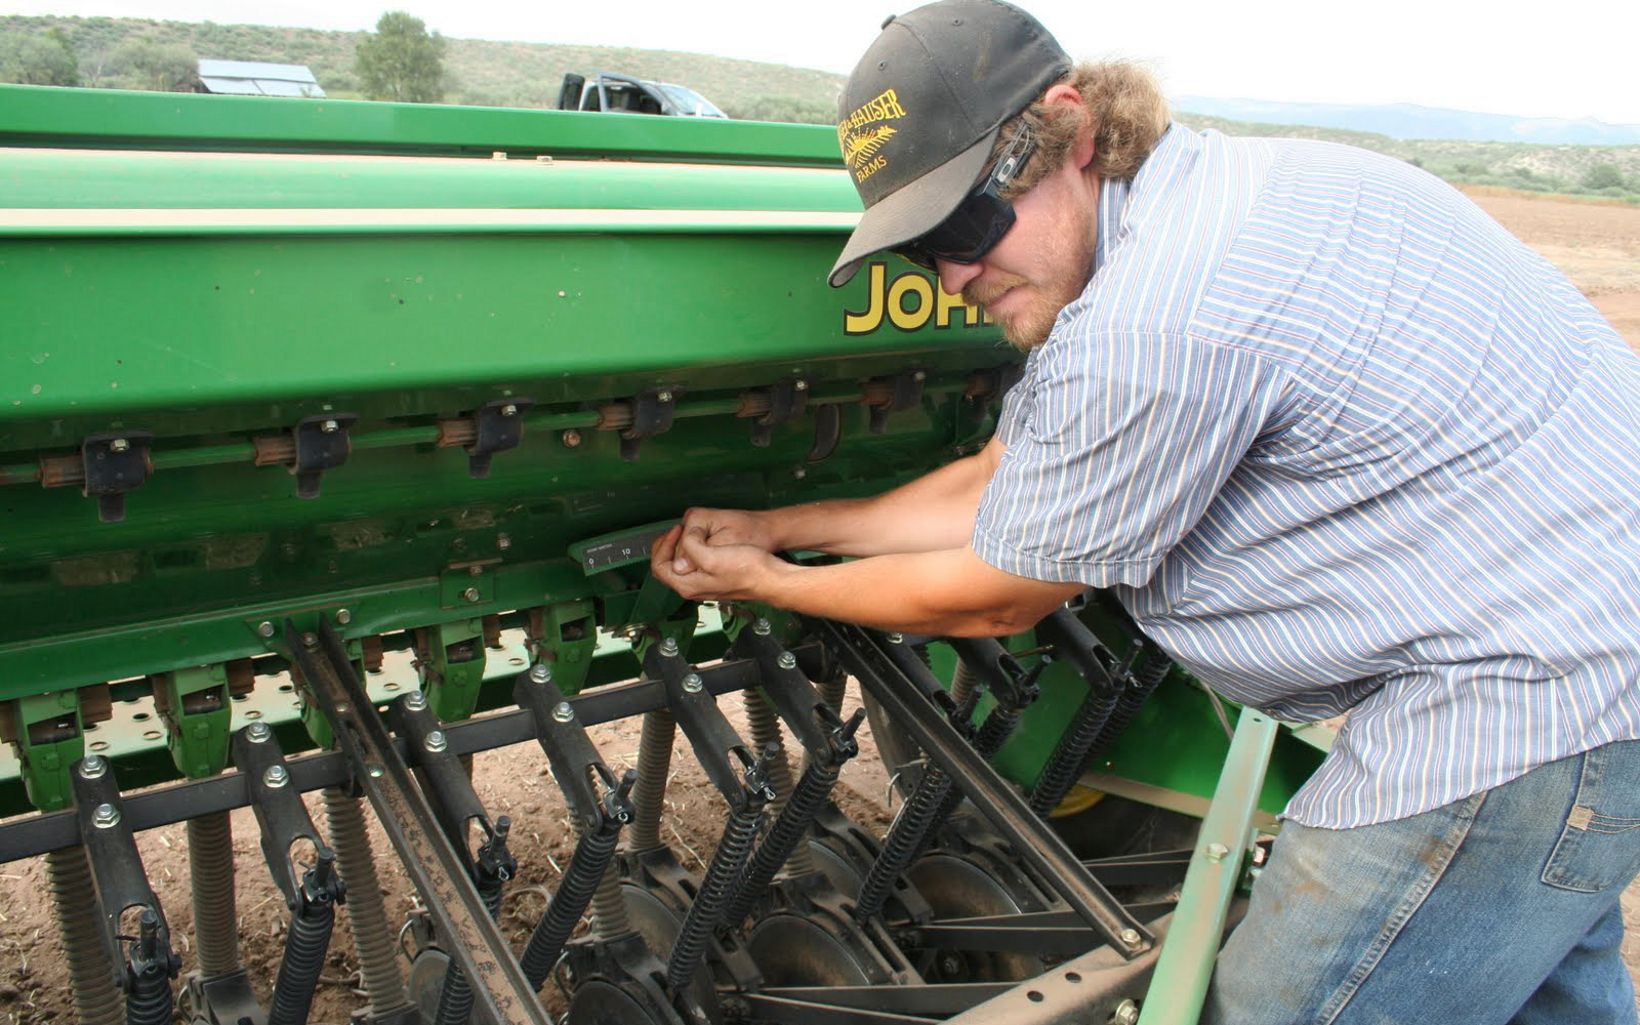 Zach Hauser checks the seeder while planting native grass seed on a field at the Conservancy's Shield Ranch on the Verde River, Arizona.